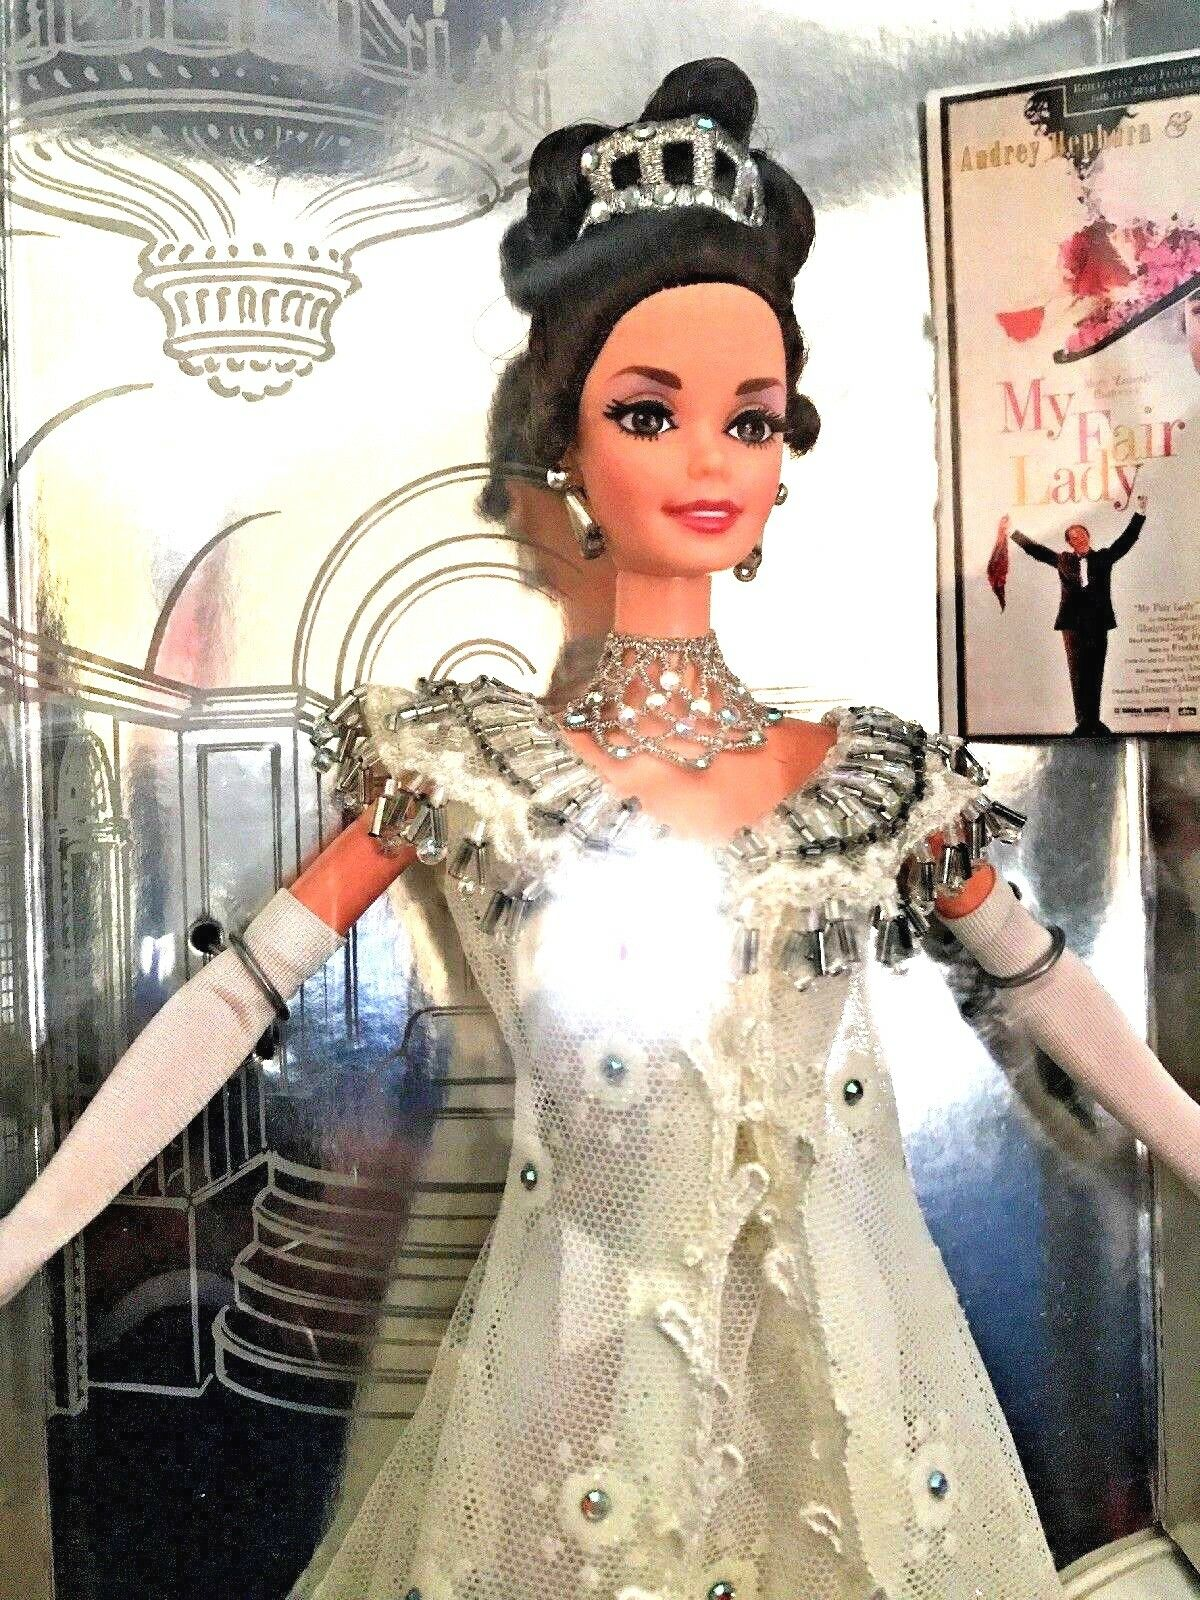 Barbie as Eliza DoolittleMy Fair LadyEmbassy Ball HOLLYWOOD LEGENDS COLLECTIO